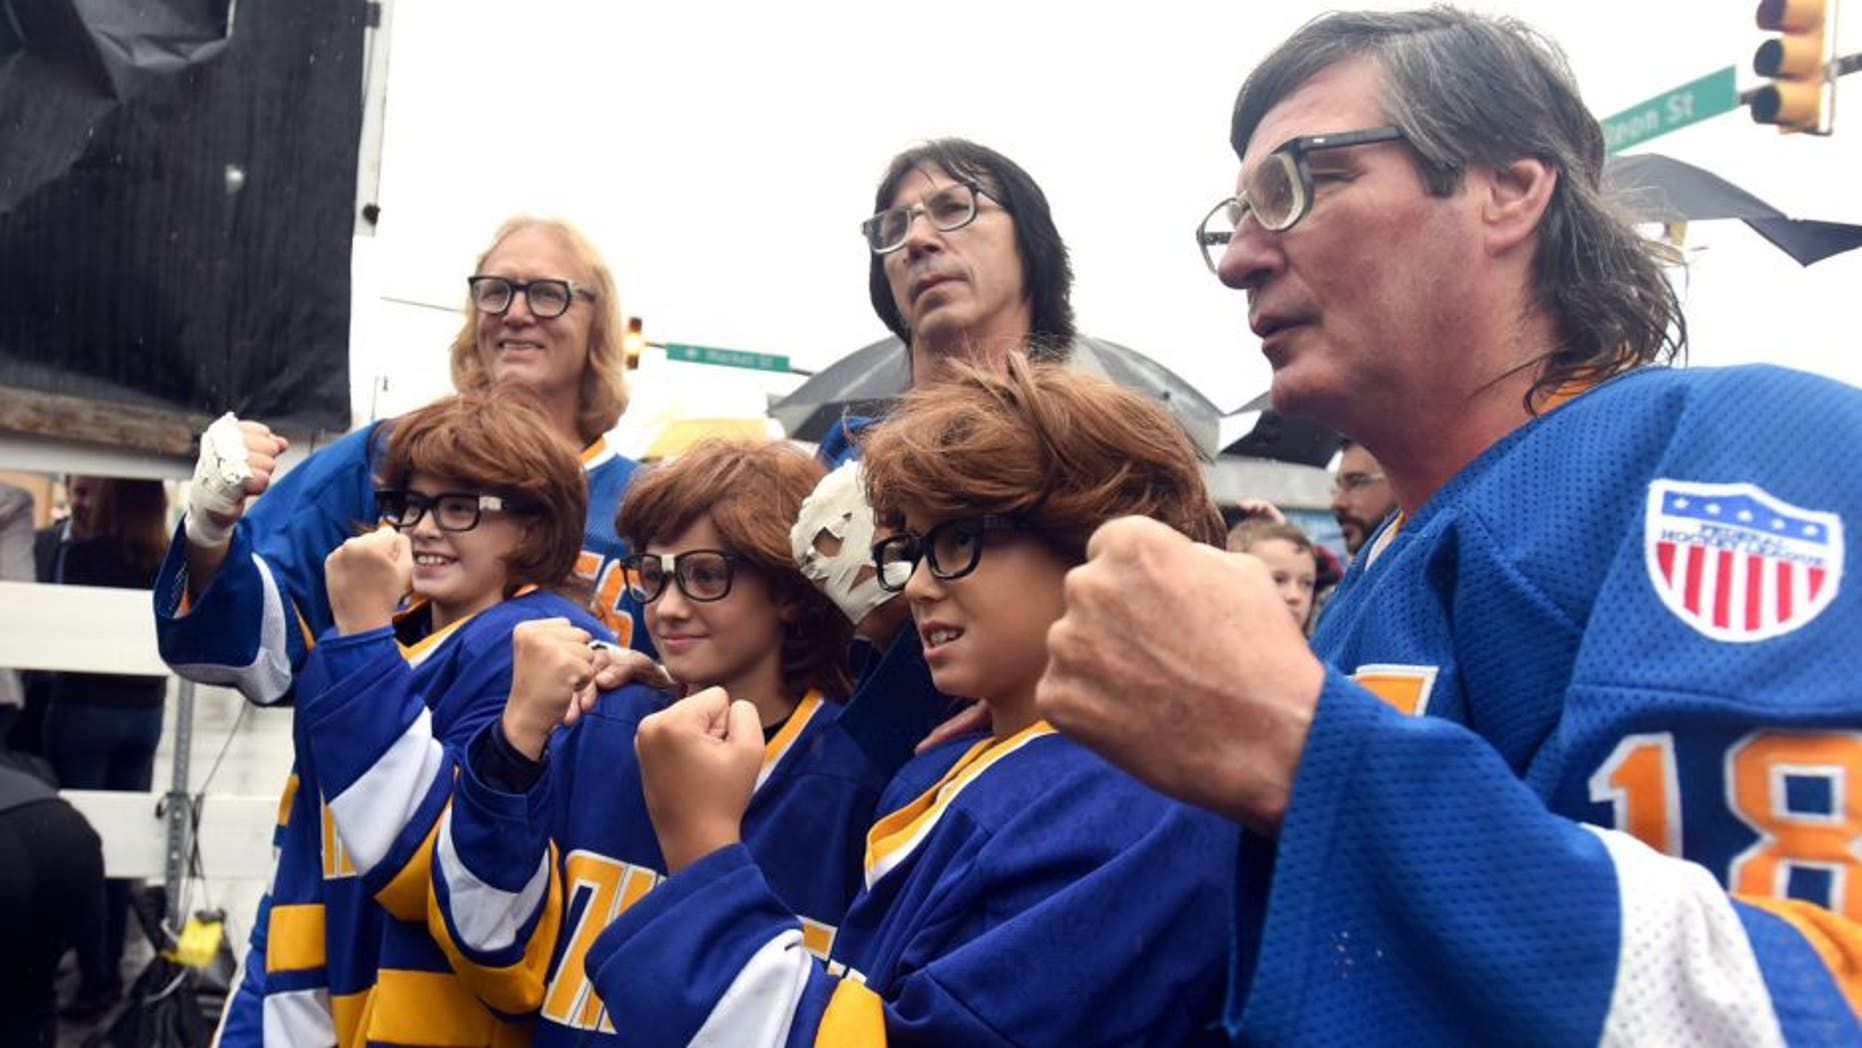 NHL turns town made famous by 'Slap Shot' into 'Hockeyville